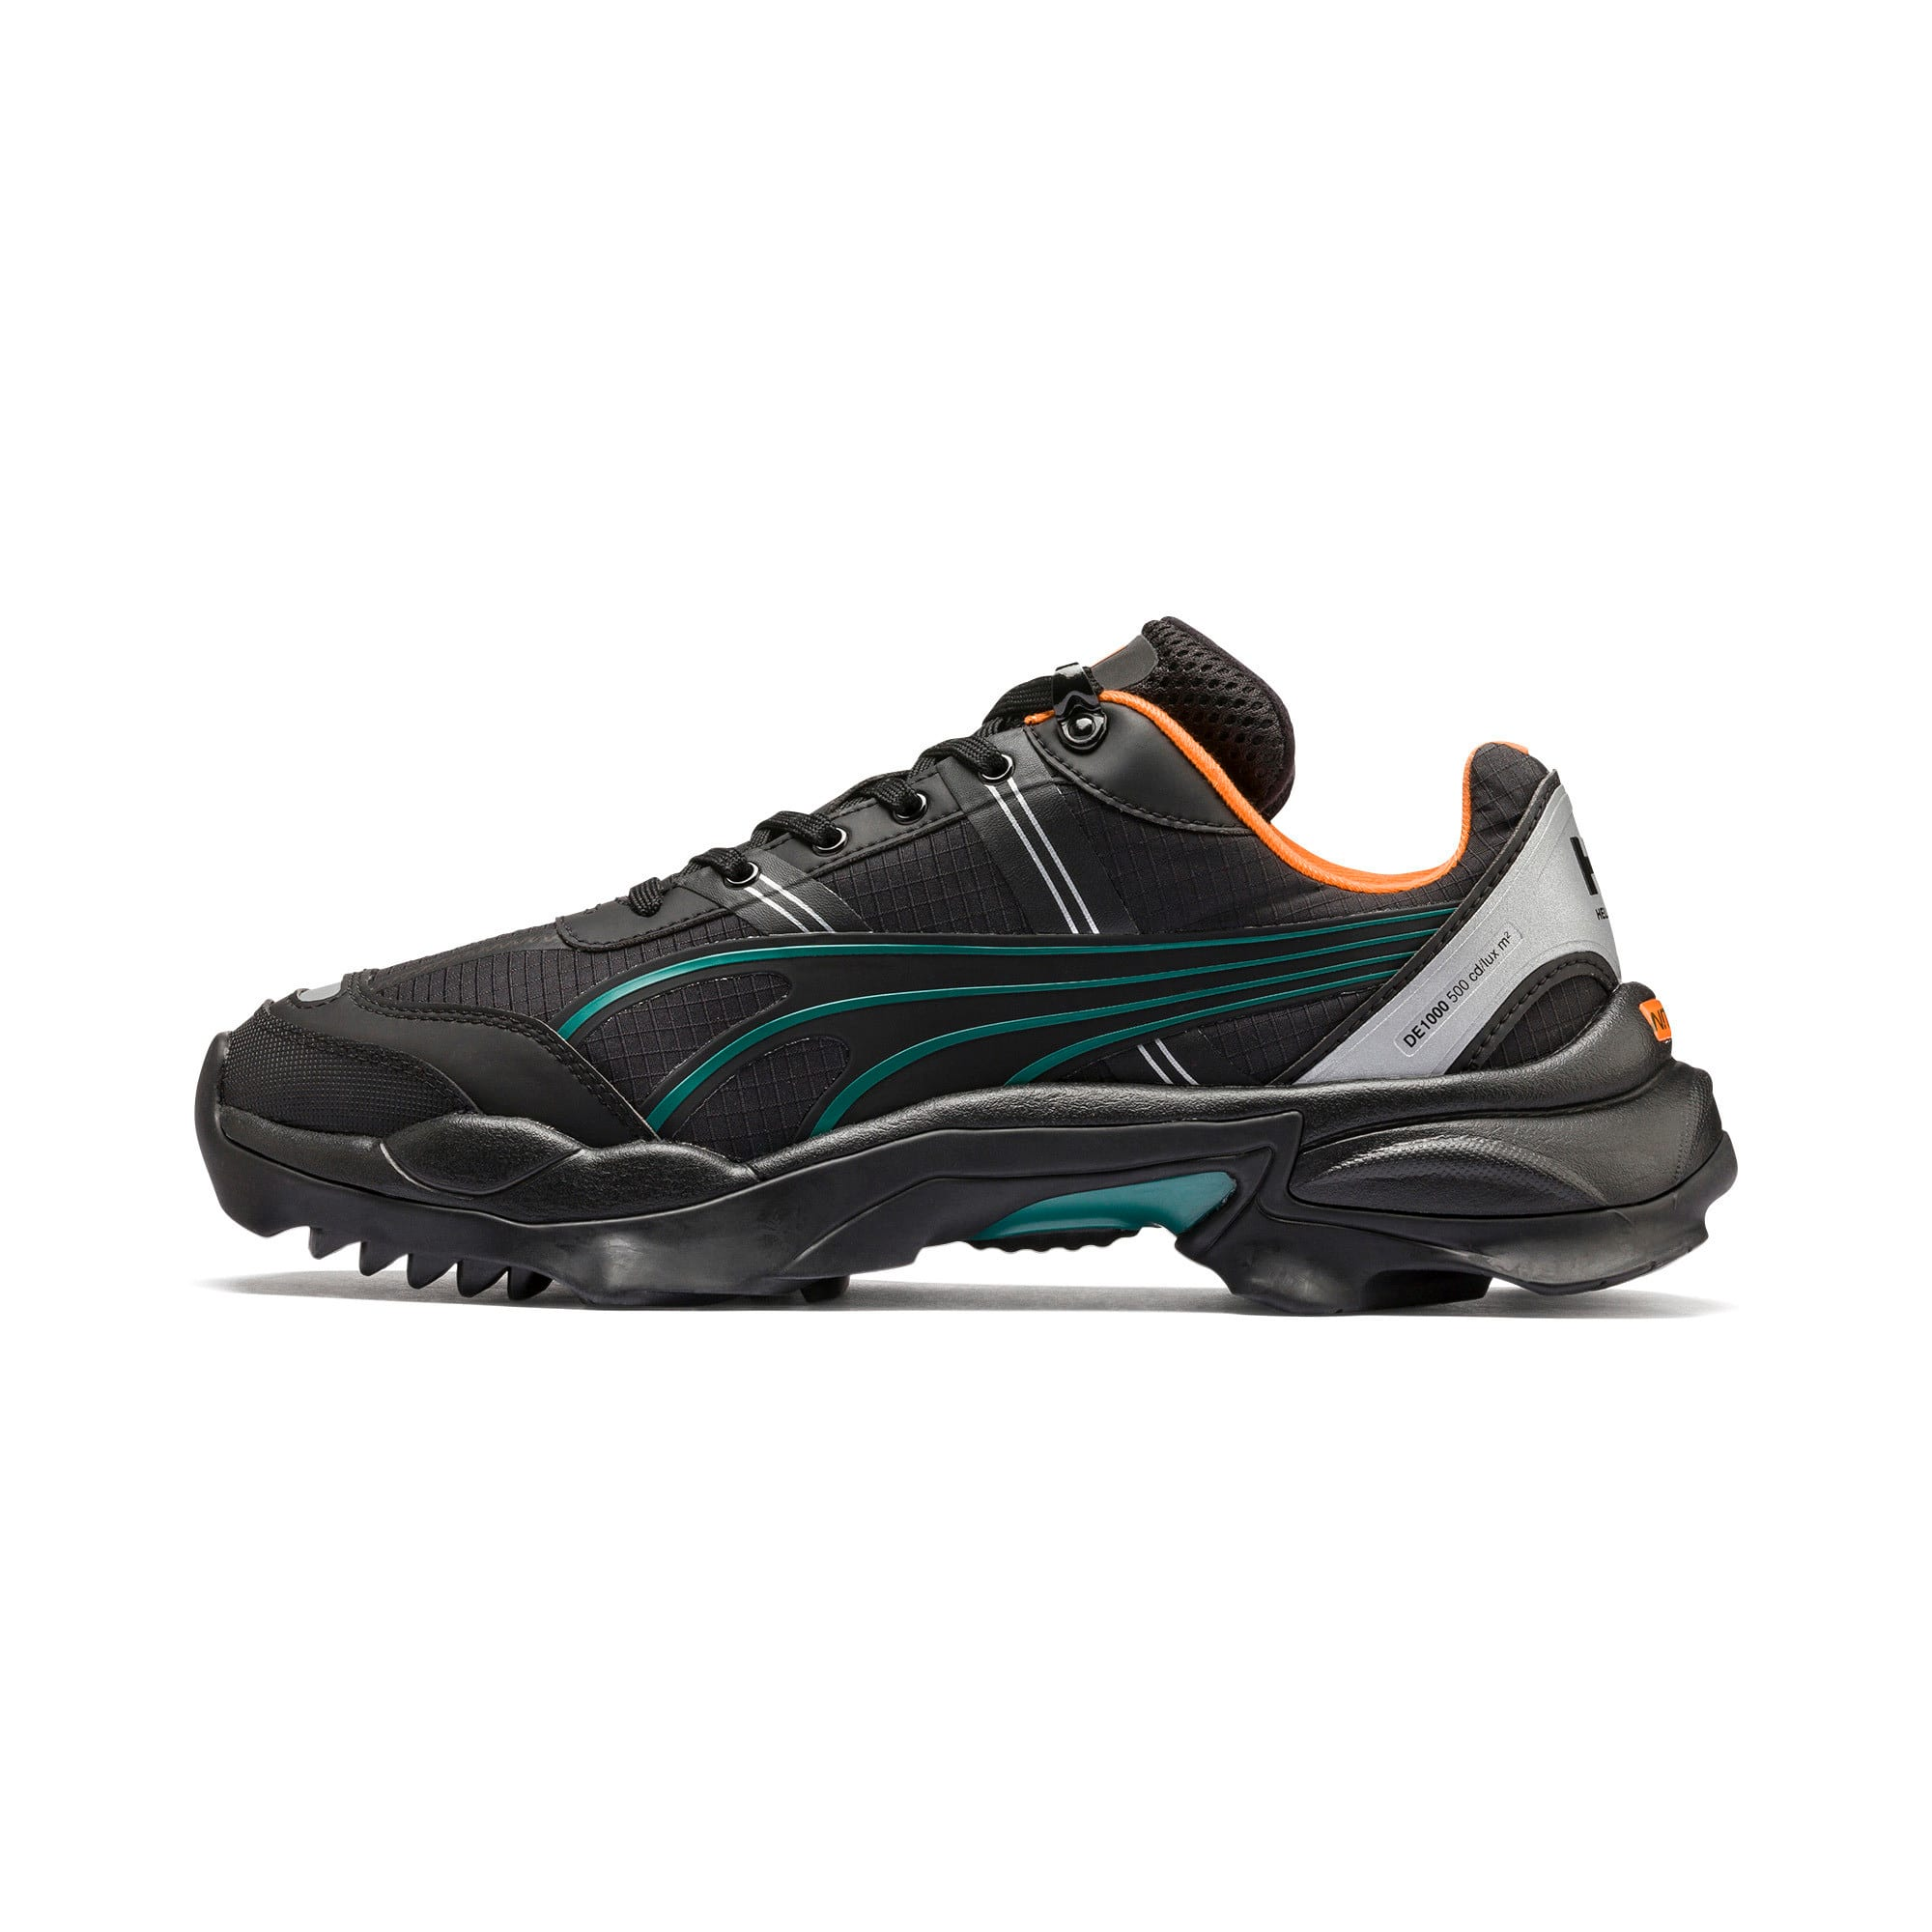 Thumbnail 1 of PUMA x HELLY HANSEN Nitefox Sneaker, Puma Black, medium